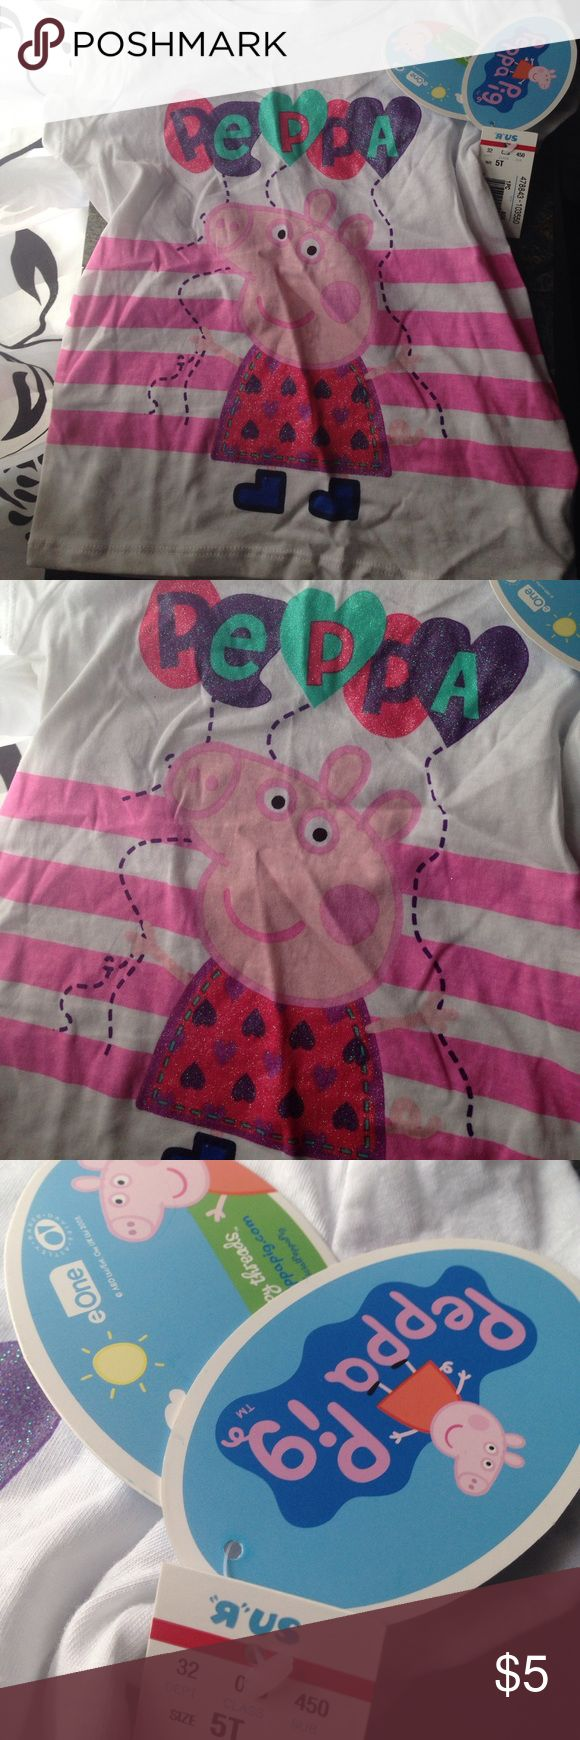 Peppa pig girls shirt 5t white short sleeve Peppa pig white shirt sleeve shirt with Peppa and balloons! Shirts & Tops Tees - Short Sleeve